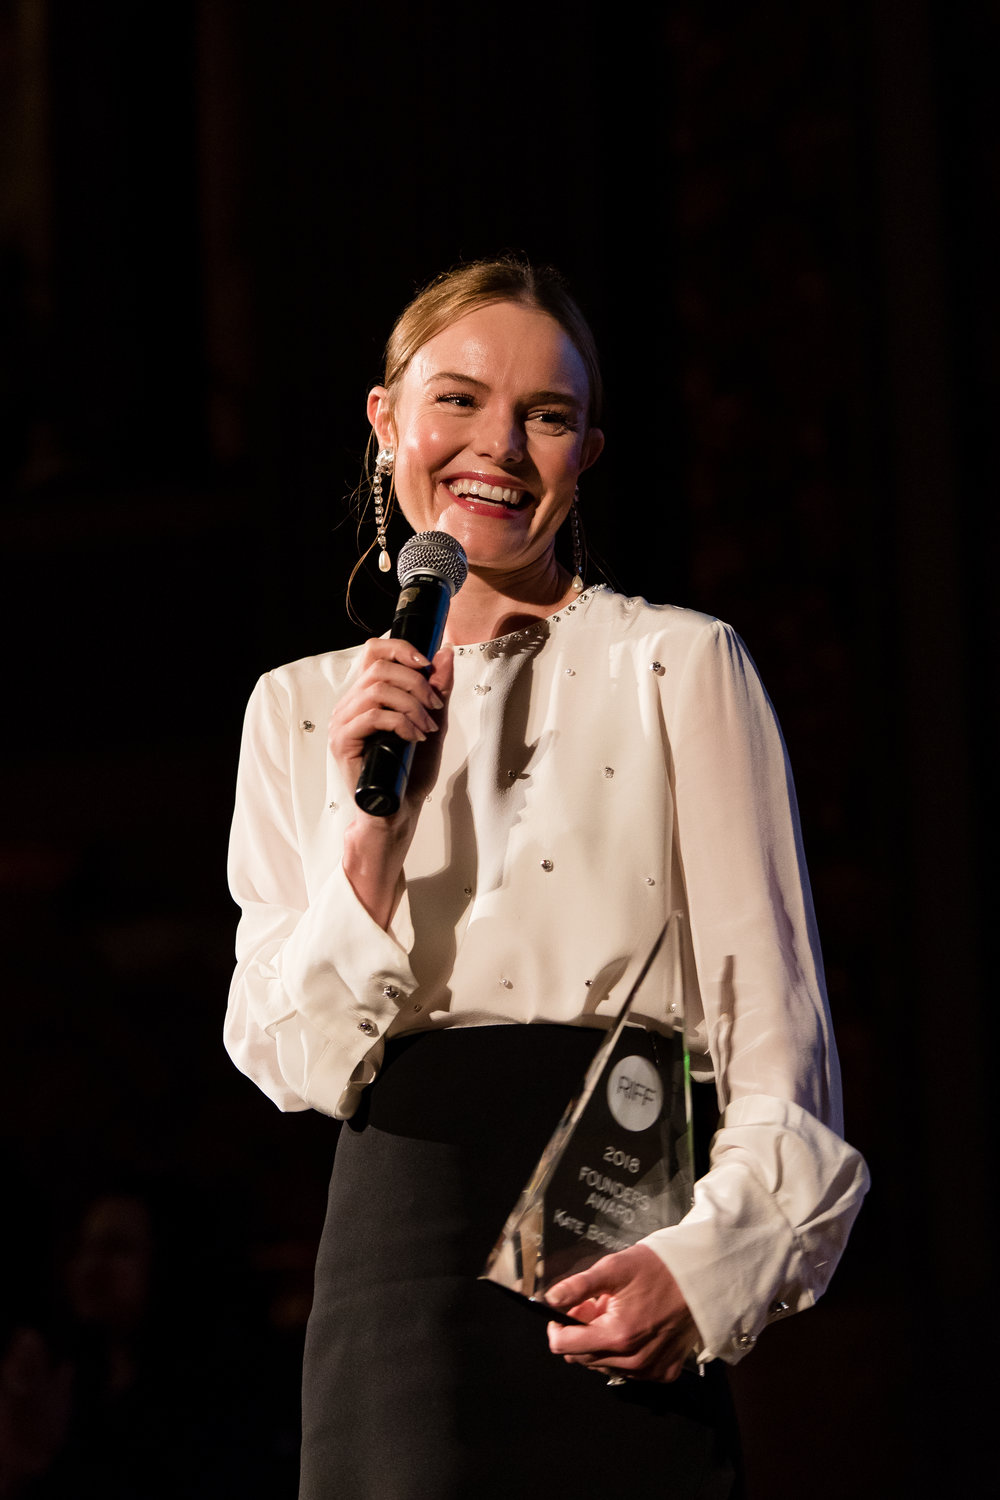 Kate Bosworth Founders Award vertical.jpg